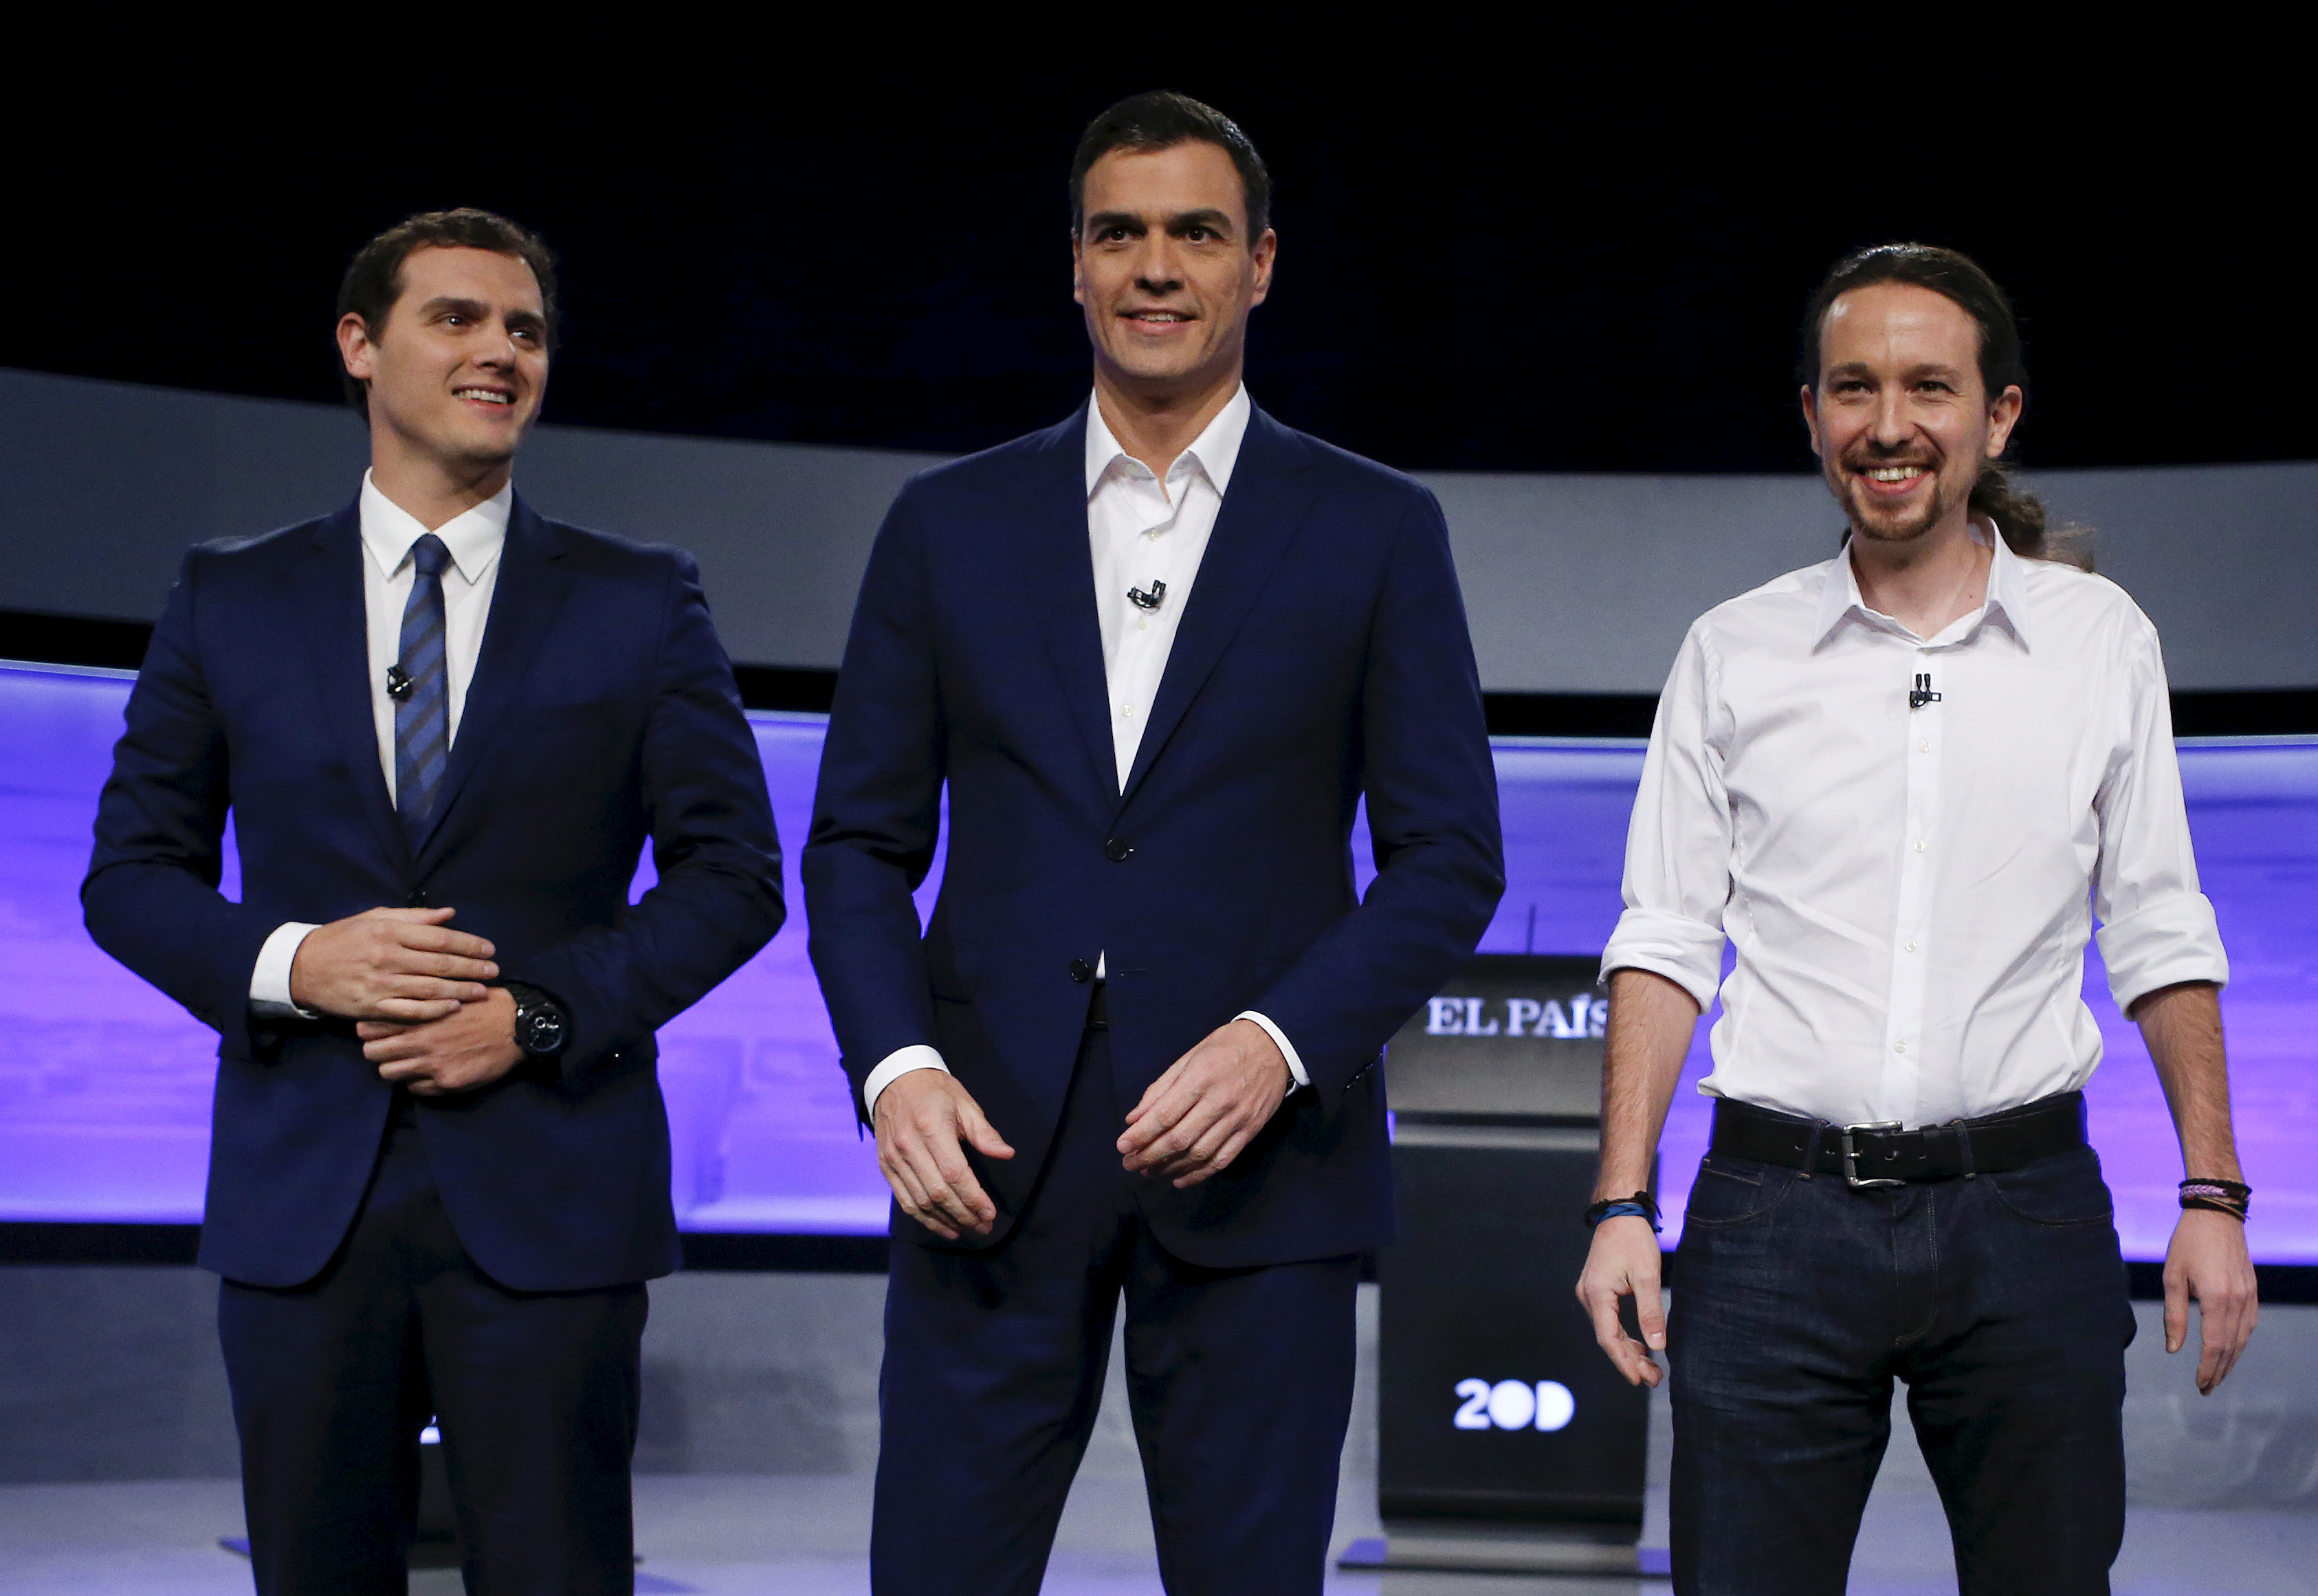 Three of the main candidates for Spain's national election (L-R) Ciudadanos party leader Albert Rivera, Socialist party (PSOE) leader Pedro Sanchez, and Podemos (We Can) party leader Pablo Iglesias,  pose before a live debate hosted by Spanish newspaper El Pais in Madrid, November 30, 2015. REUTERS/Juan Medina - RTX1WKJS